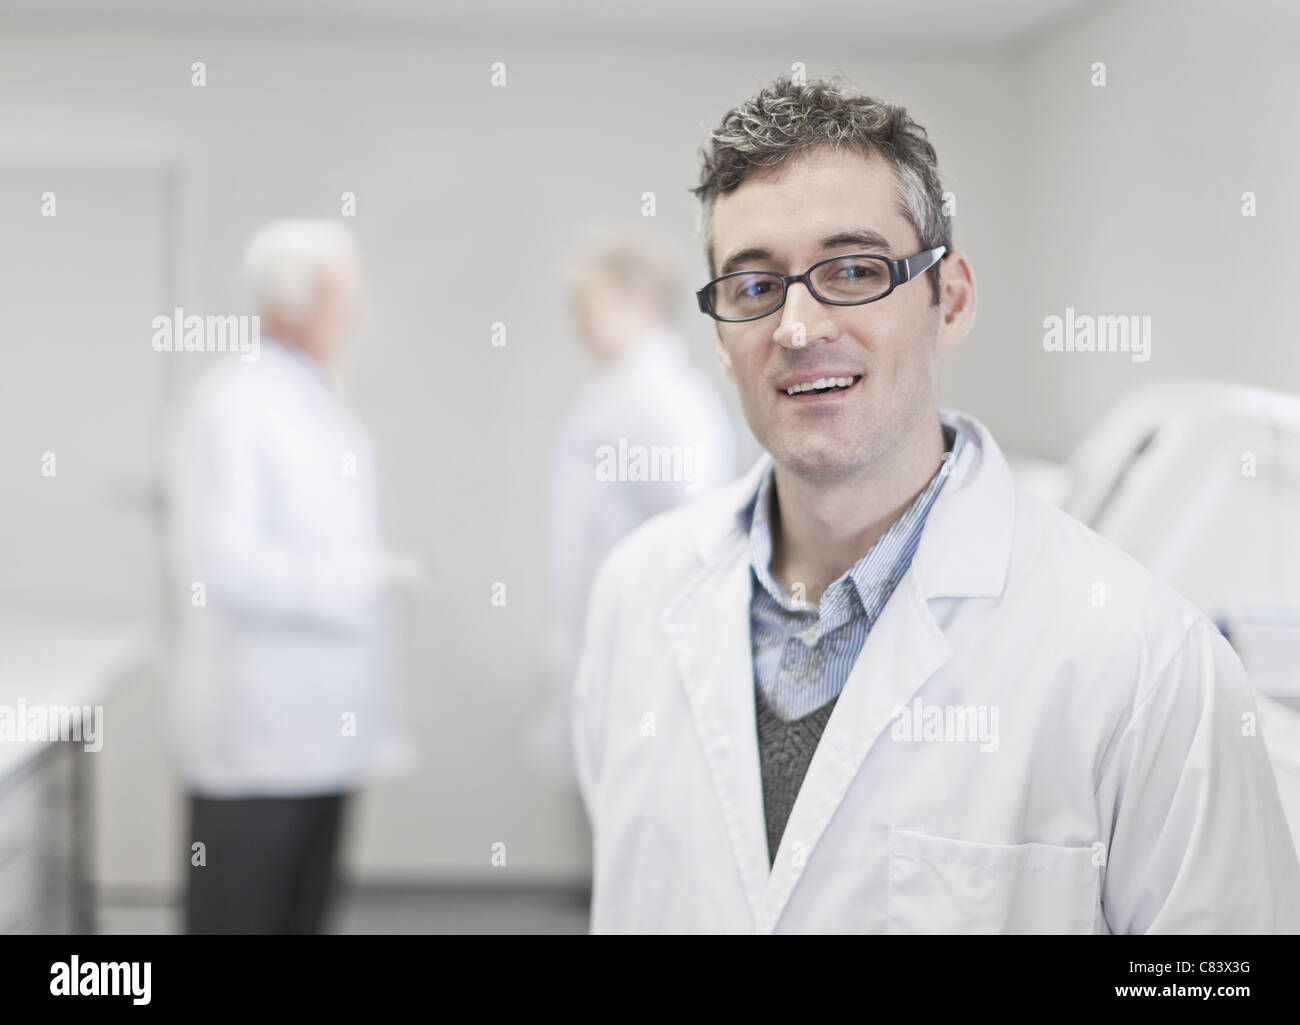 Scientist standing in pathology lab - Stock Image